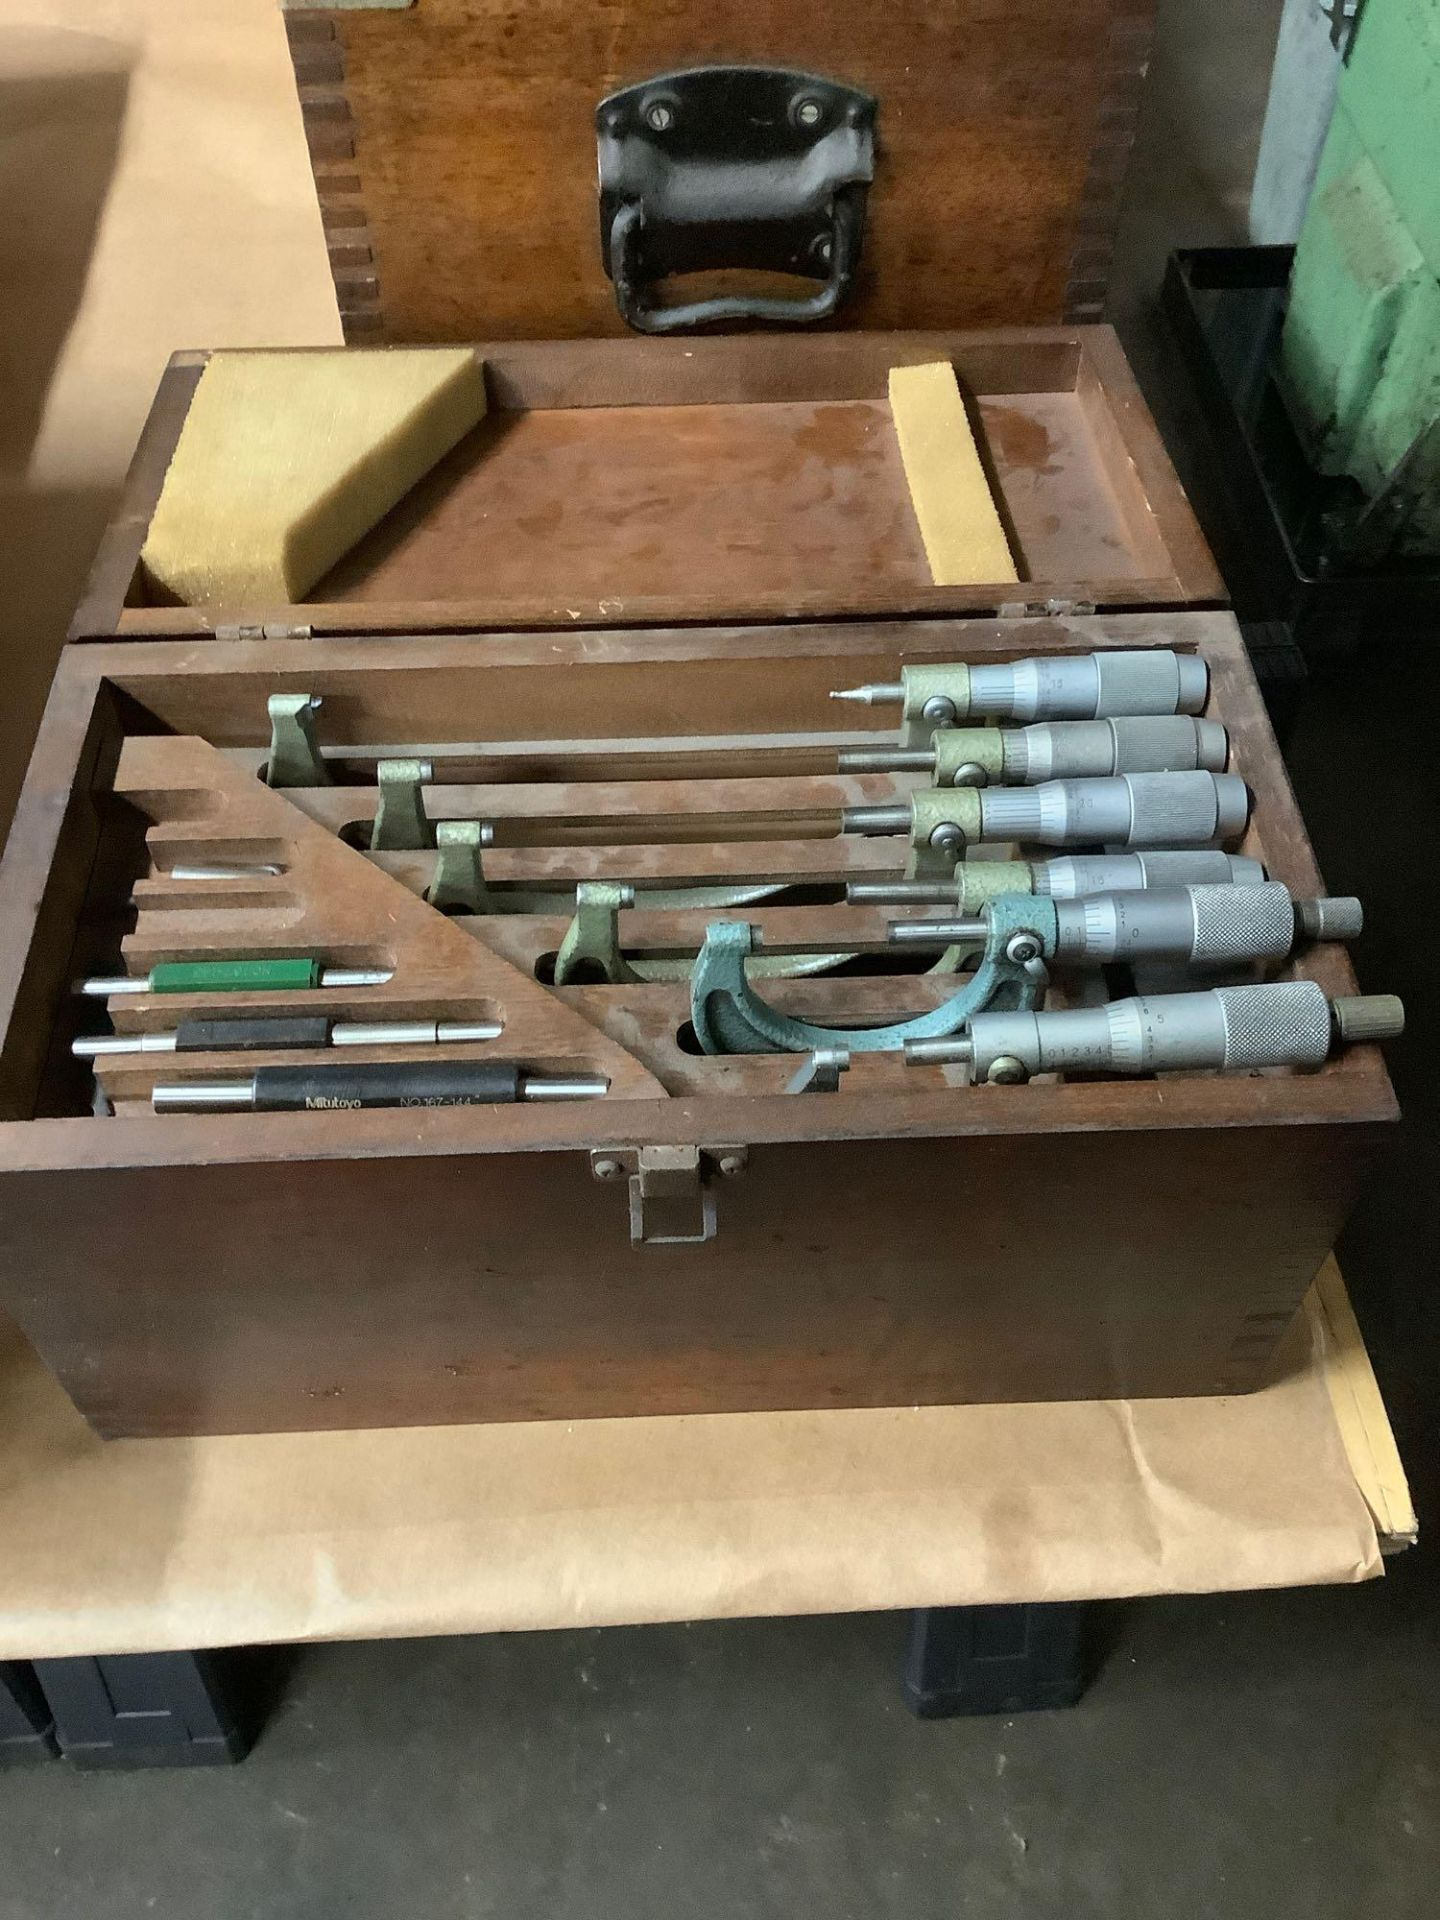 """Set of OD Micrometers, Mixed Brands 0-1"""" thru 5-6"""" - Image 3 of 3"""